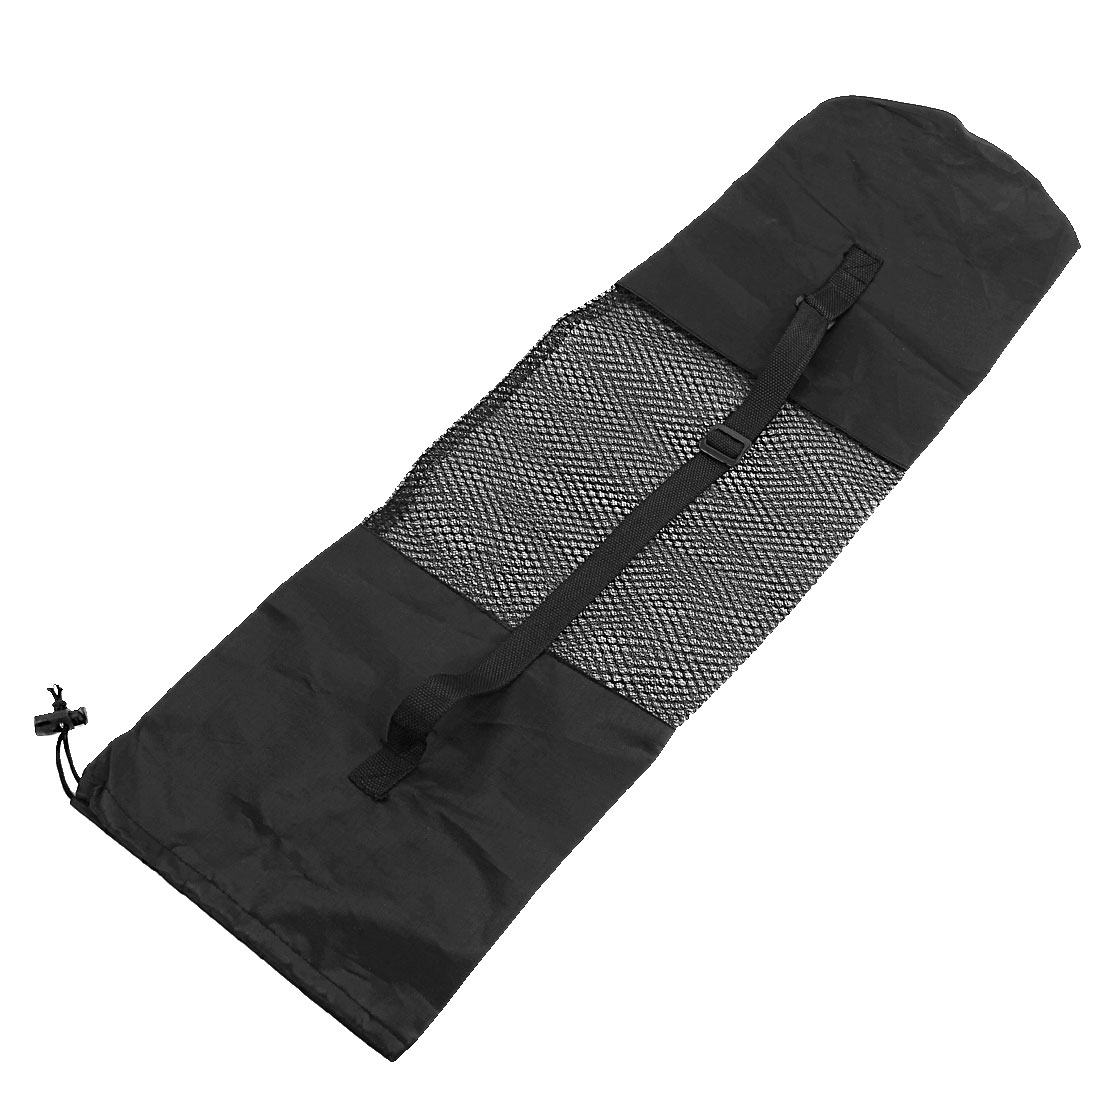 Adjustable Strap Nylon Yoga Pilates Mat Bag Black